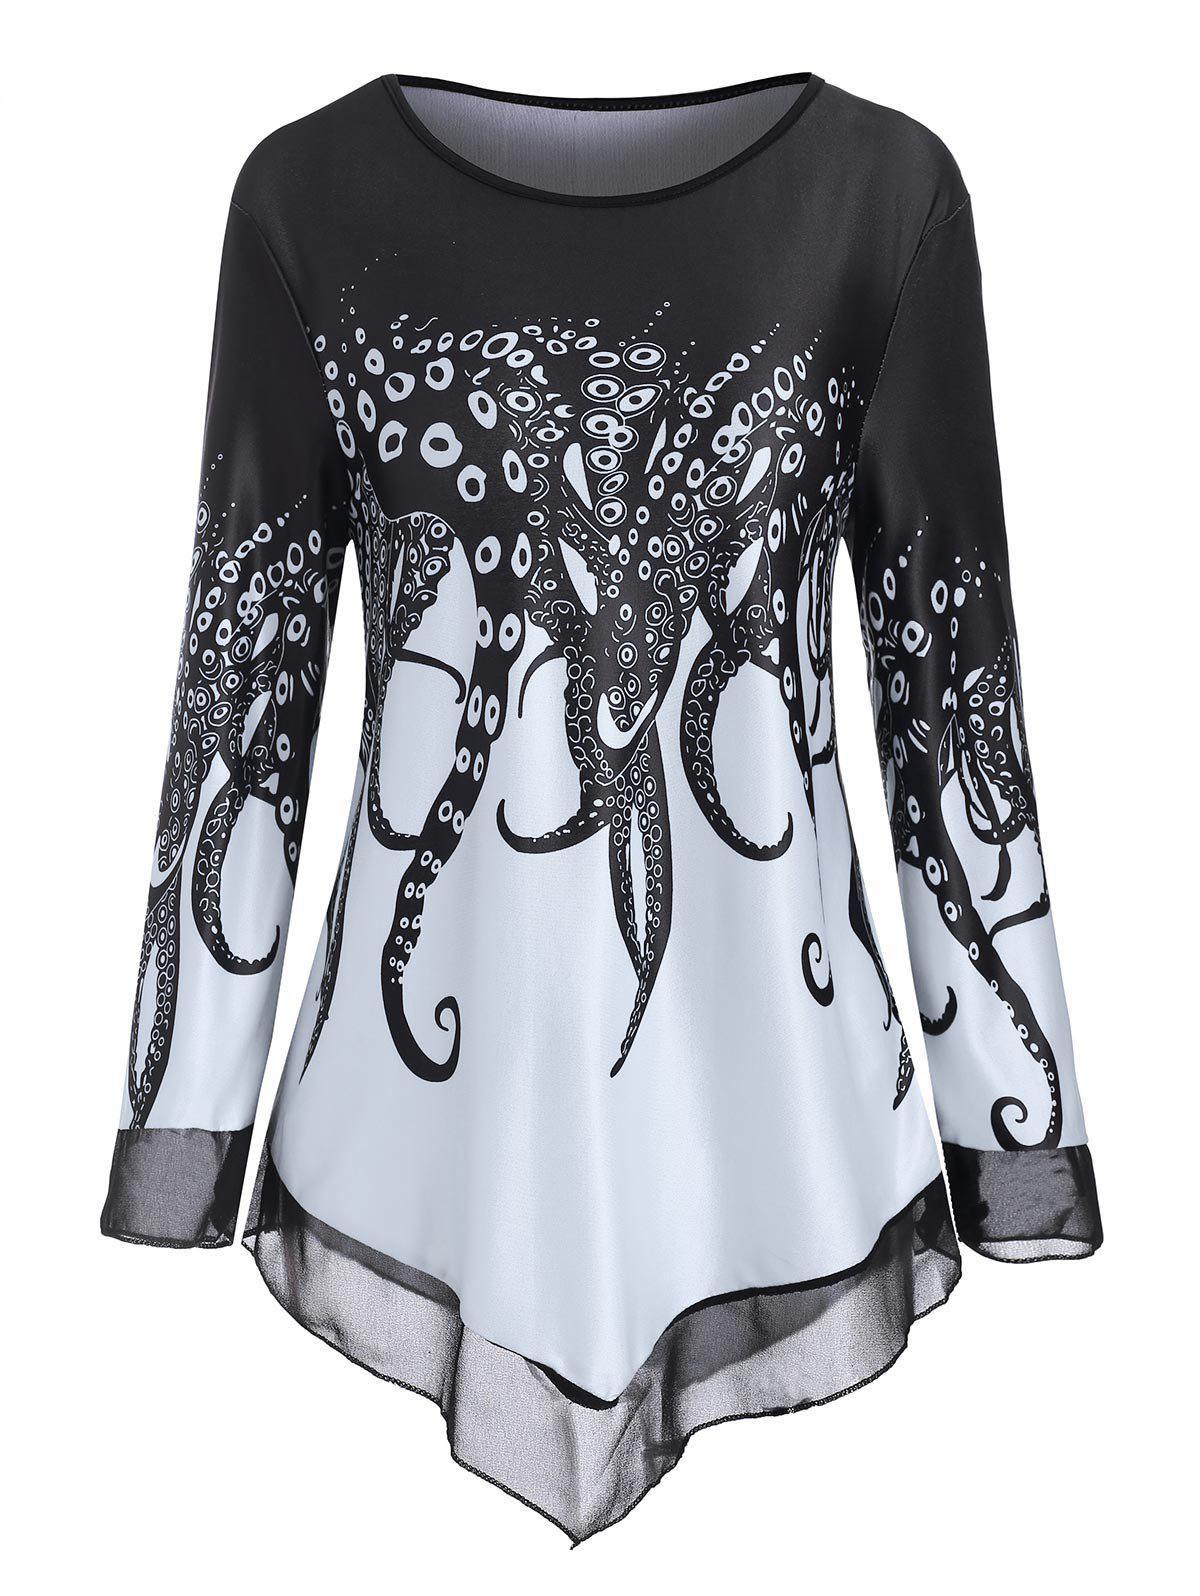 Store Octopus Tentacles Chiffon Panel Round Neck Tee